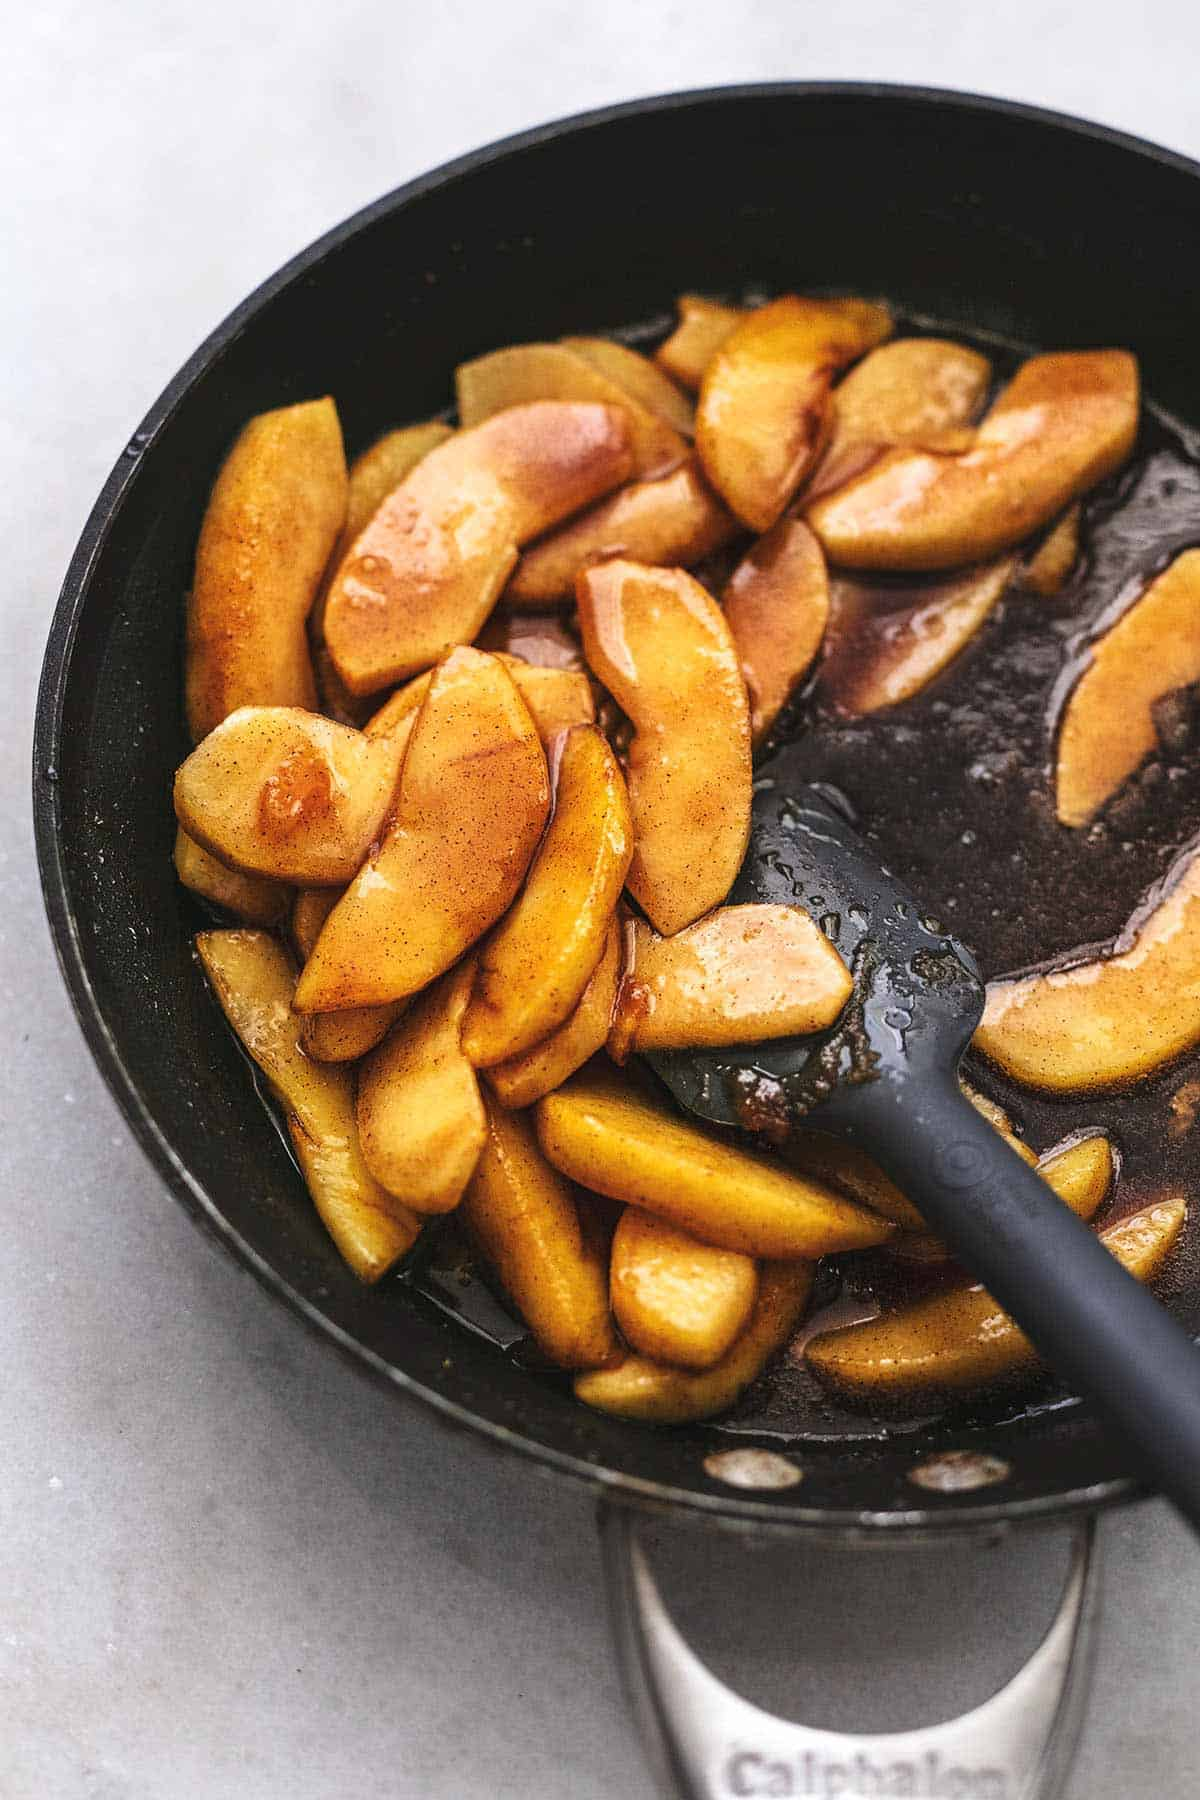 sautéed apple slices in caramel sauce in a skillet with a rubber spatula.